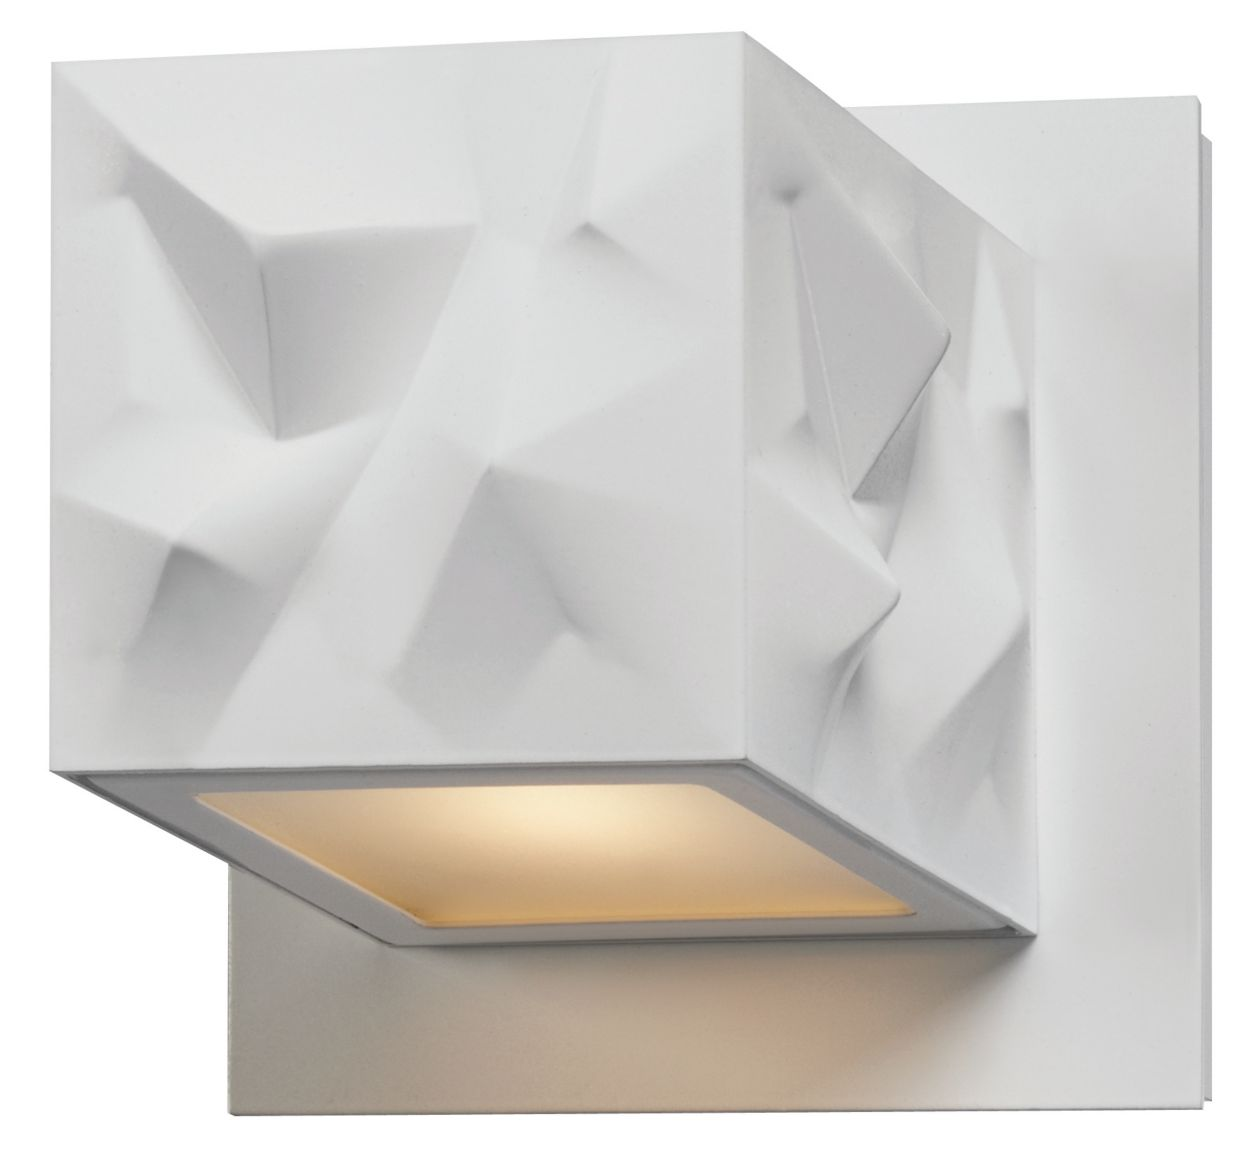 Alps LED wall light